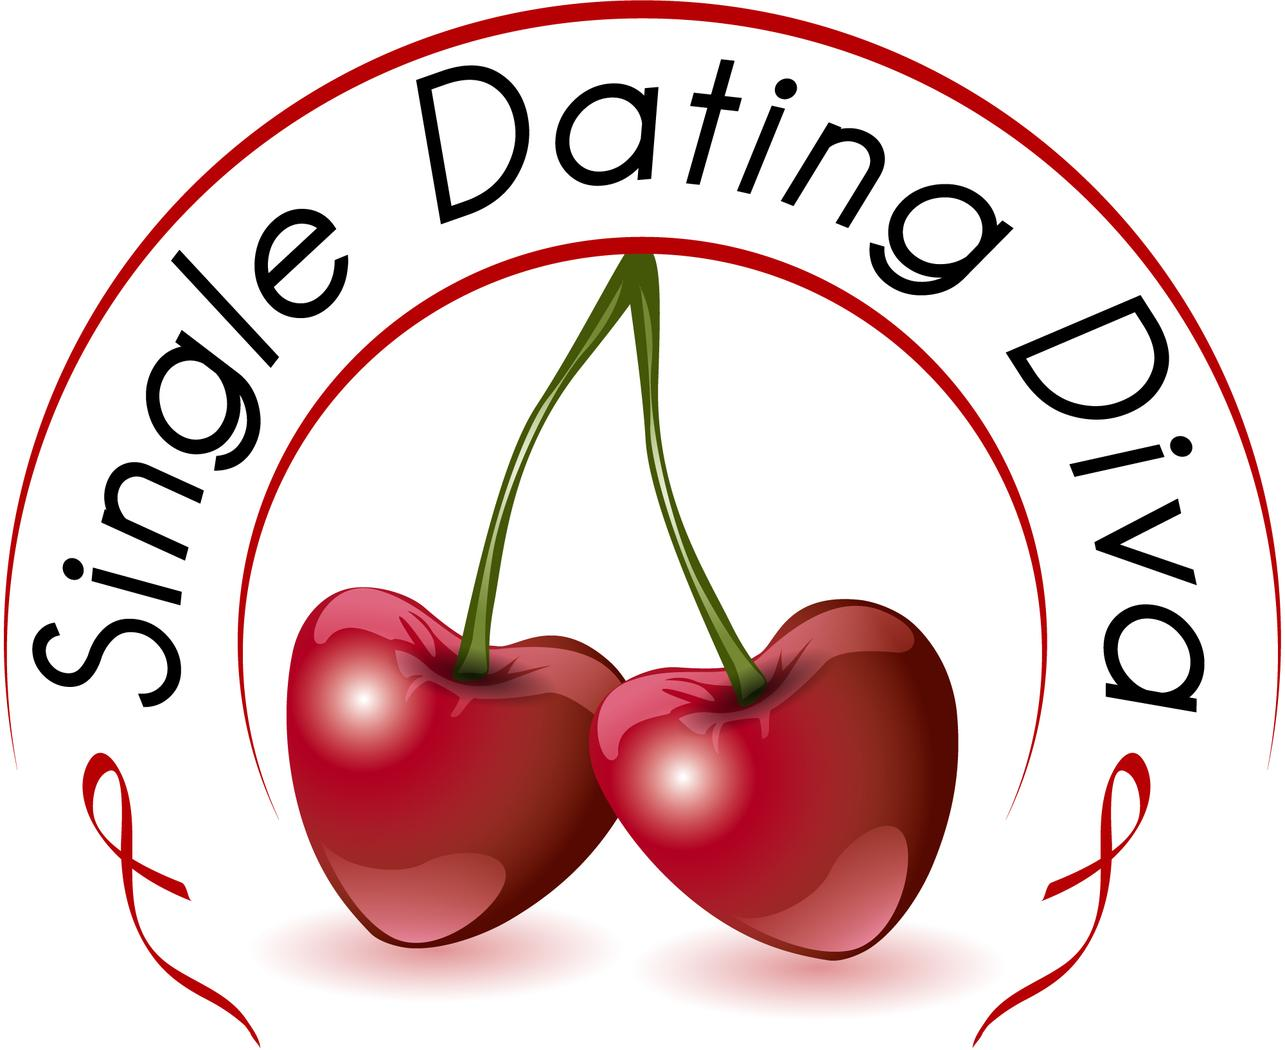 single dating diva twitter For those who are single diary of a dating diva for those who are single view jamekashamae's profile on twitter.